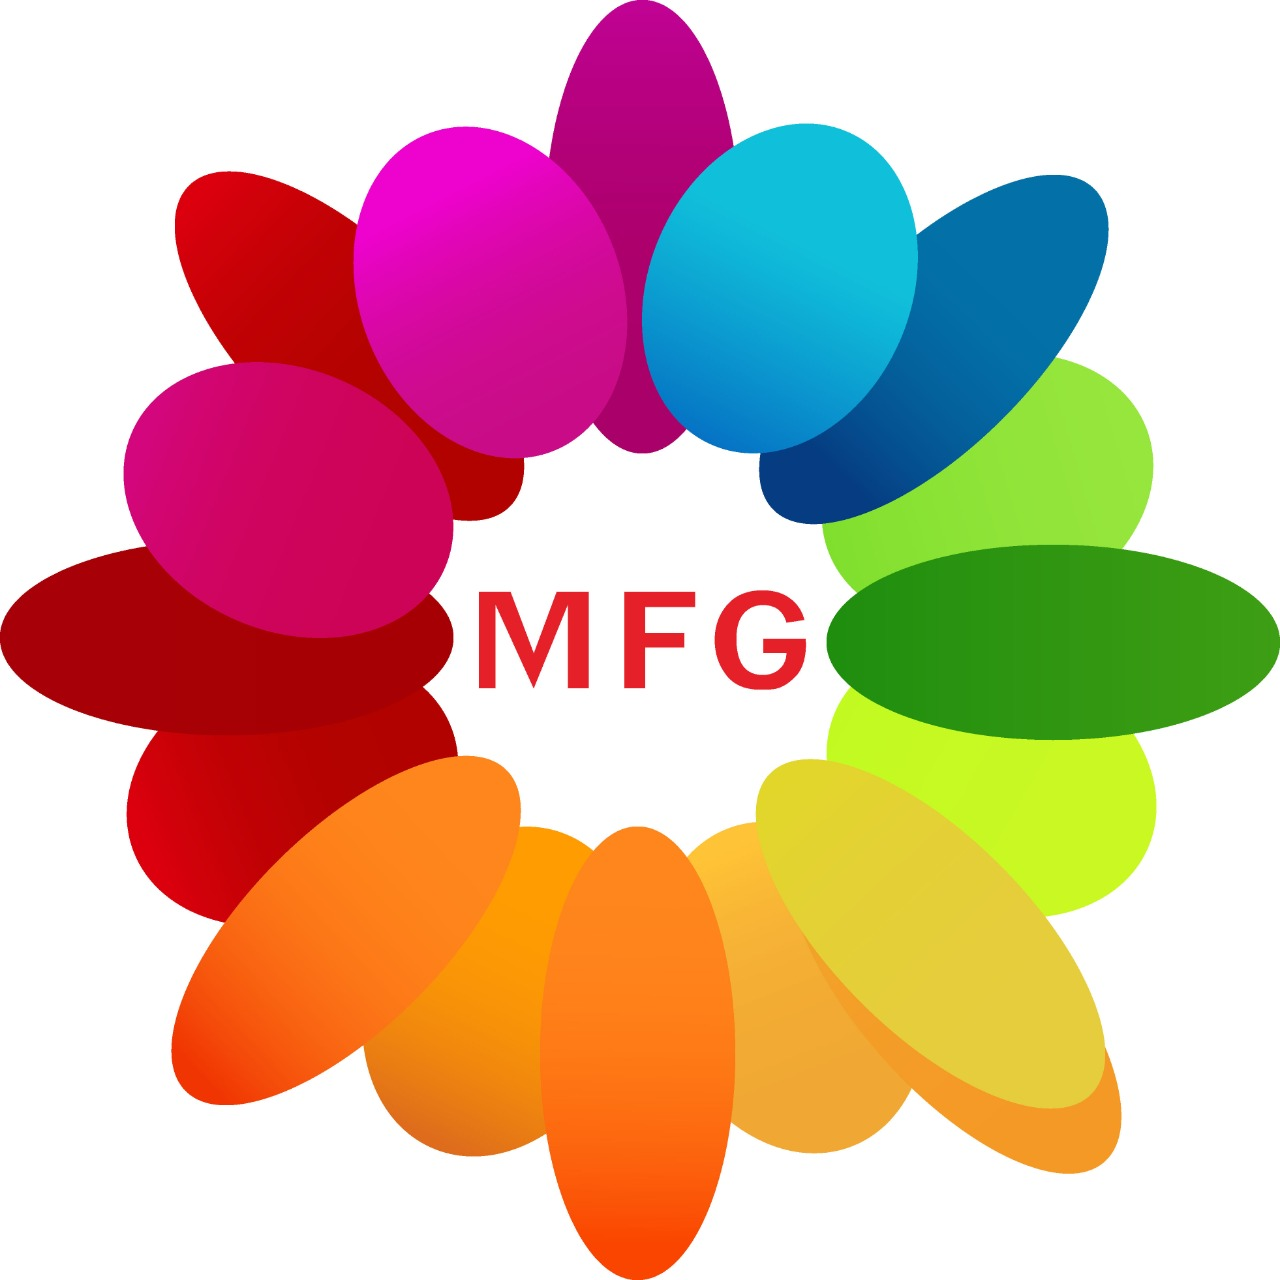 Good Combination of 1 kg black forest cake with 8 inches teddy bear with 6 pcs of assorted cadburies with single red rose